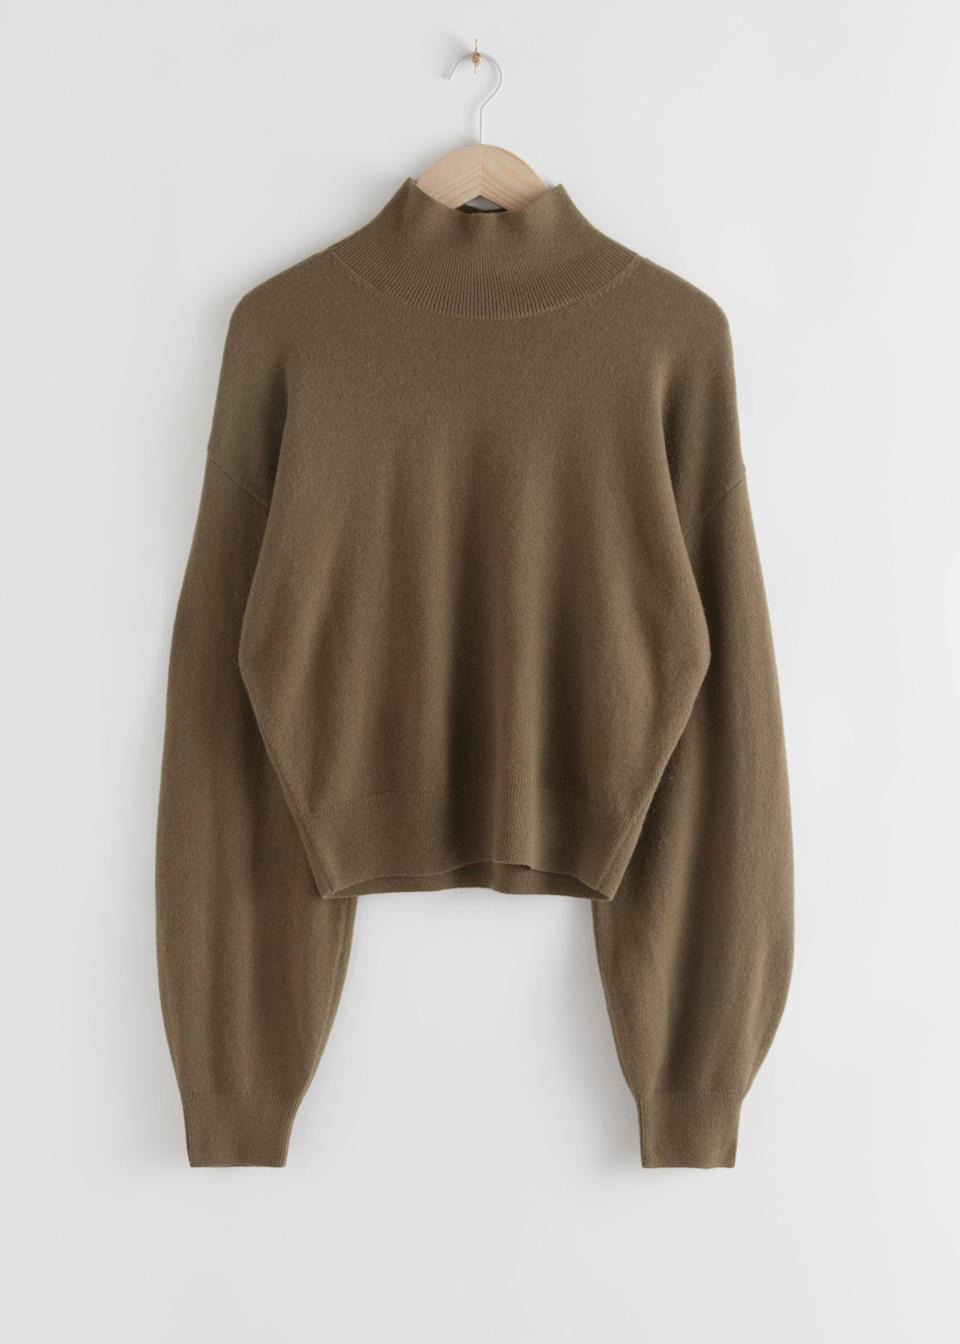 "<br><br><strong>& Other Stories</strong> Cashmere Puff Sleeve Turtleneck, $, available at <a href=""https://www.stories.com/en_gbp/clothing/knitwear/turtlenecks/product.cashmere-puff-sleeve-turtleneck-green.0783979003.html"" rel=""nofollow noopener"" target=""_blank"" data-ylk=""slk:& Other Stories"" class=""link rapid-noclick-resp"">& Other Stories</a>"